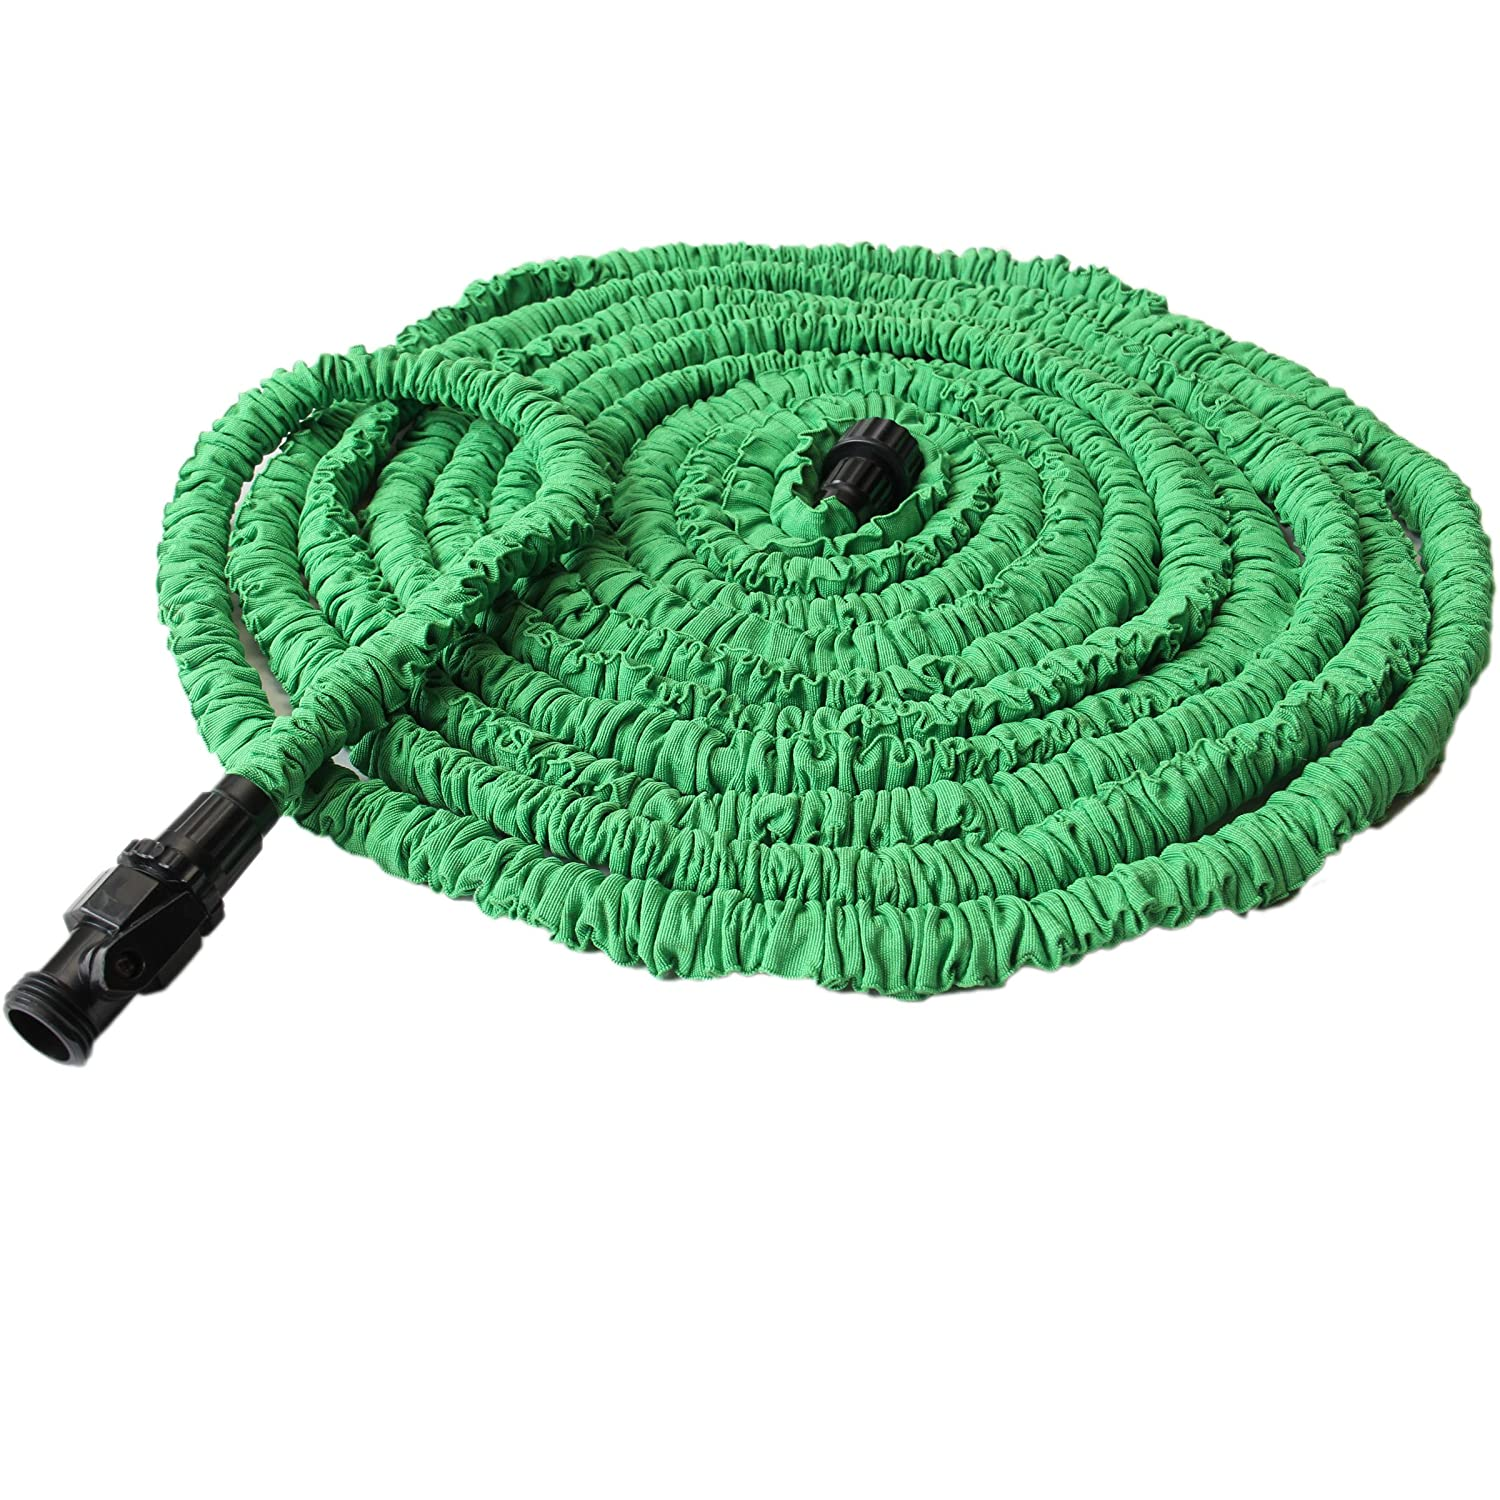 Quality Source Products (TM) Expandable Hose 100 Feet Green